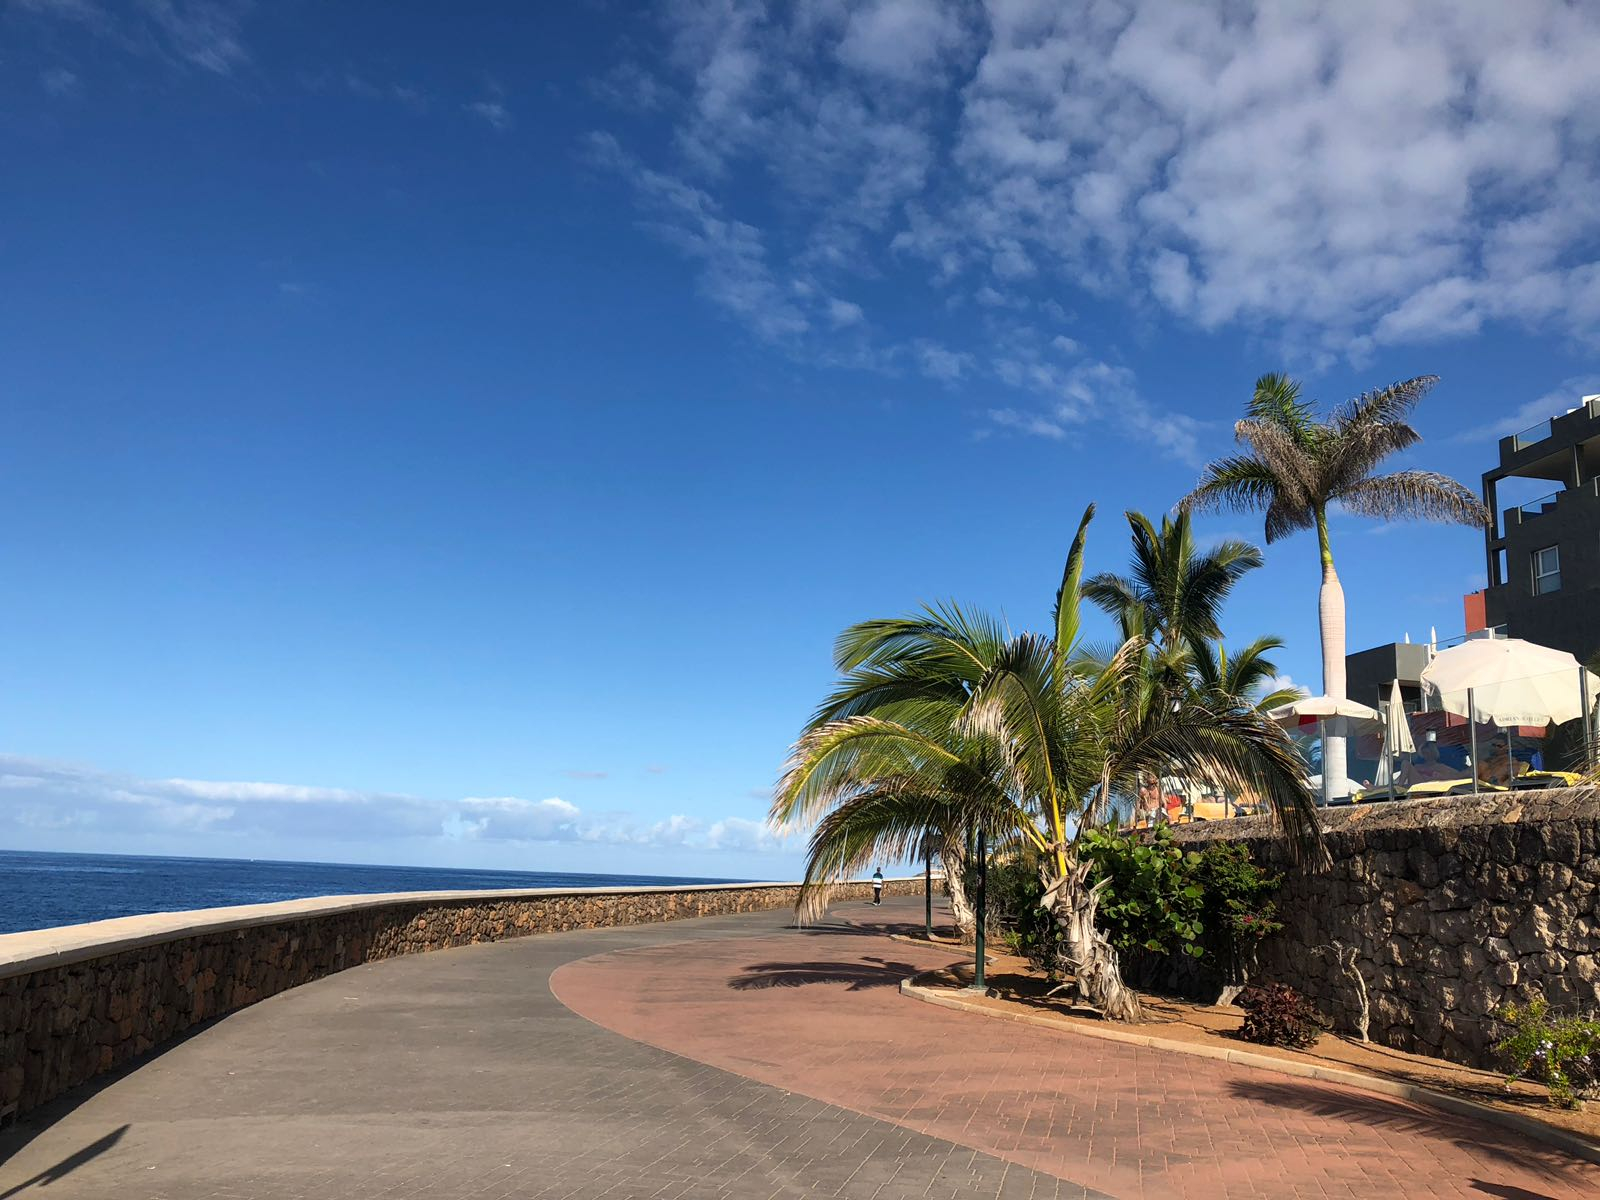 Properties for Sale in Tenerife, Canary Islands, Spain | SylkWayStar Real Estate. 3 bedroom apartment Playa Paraiso. Image-26164